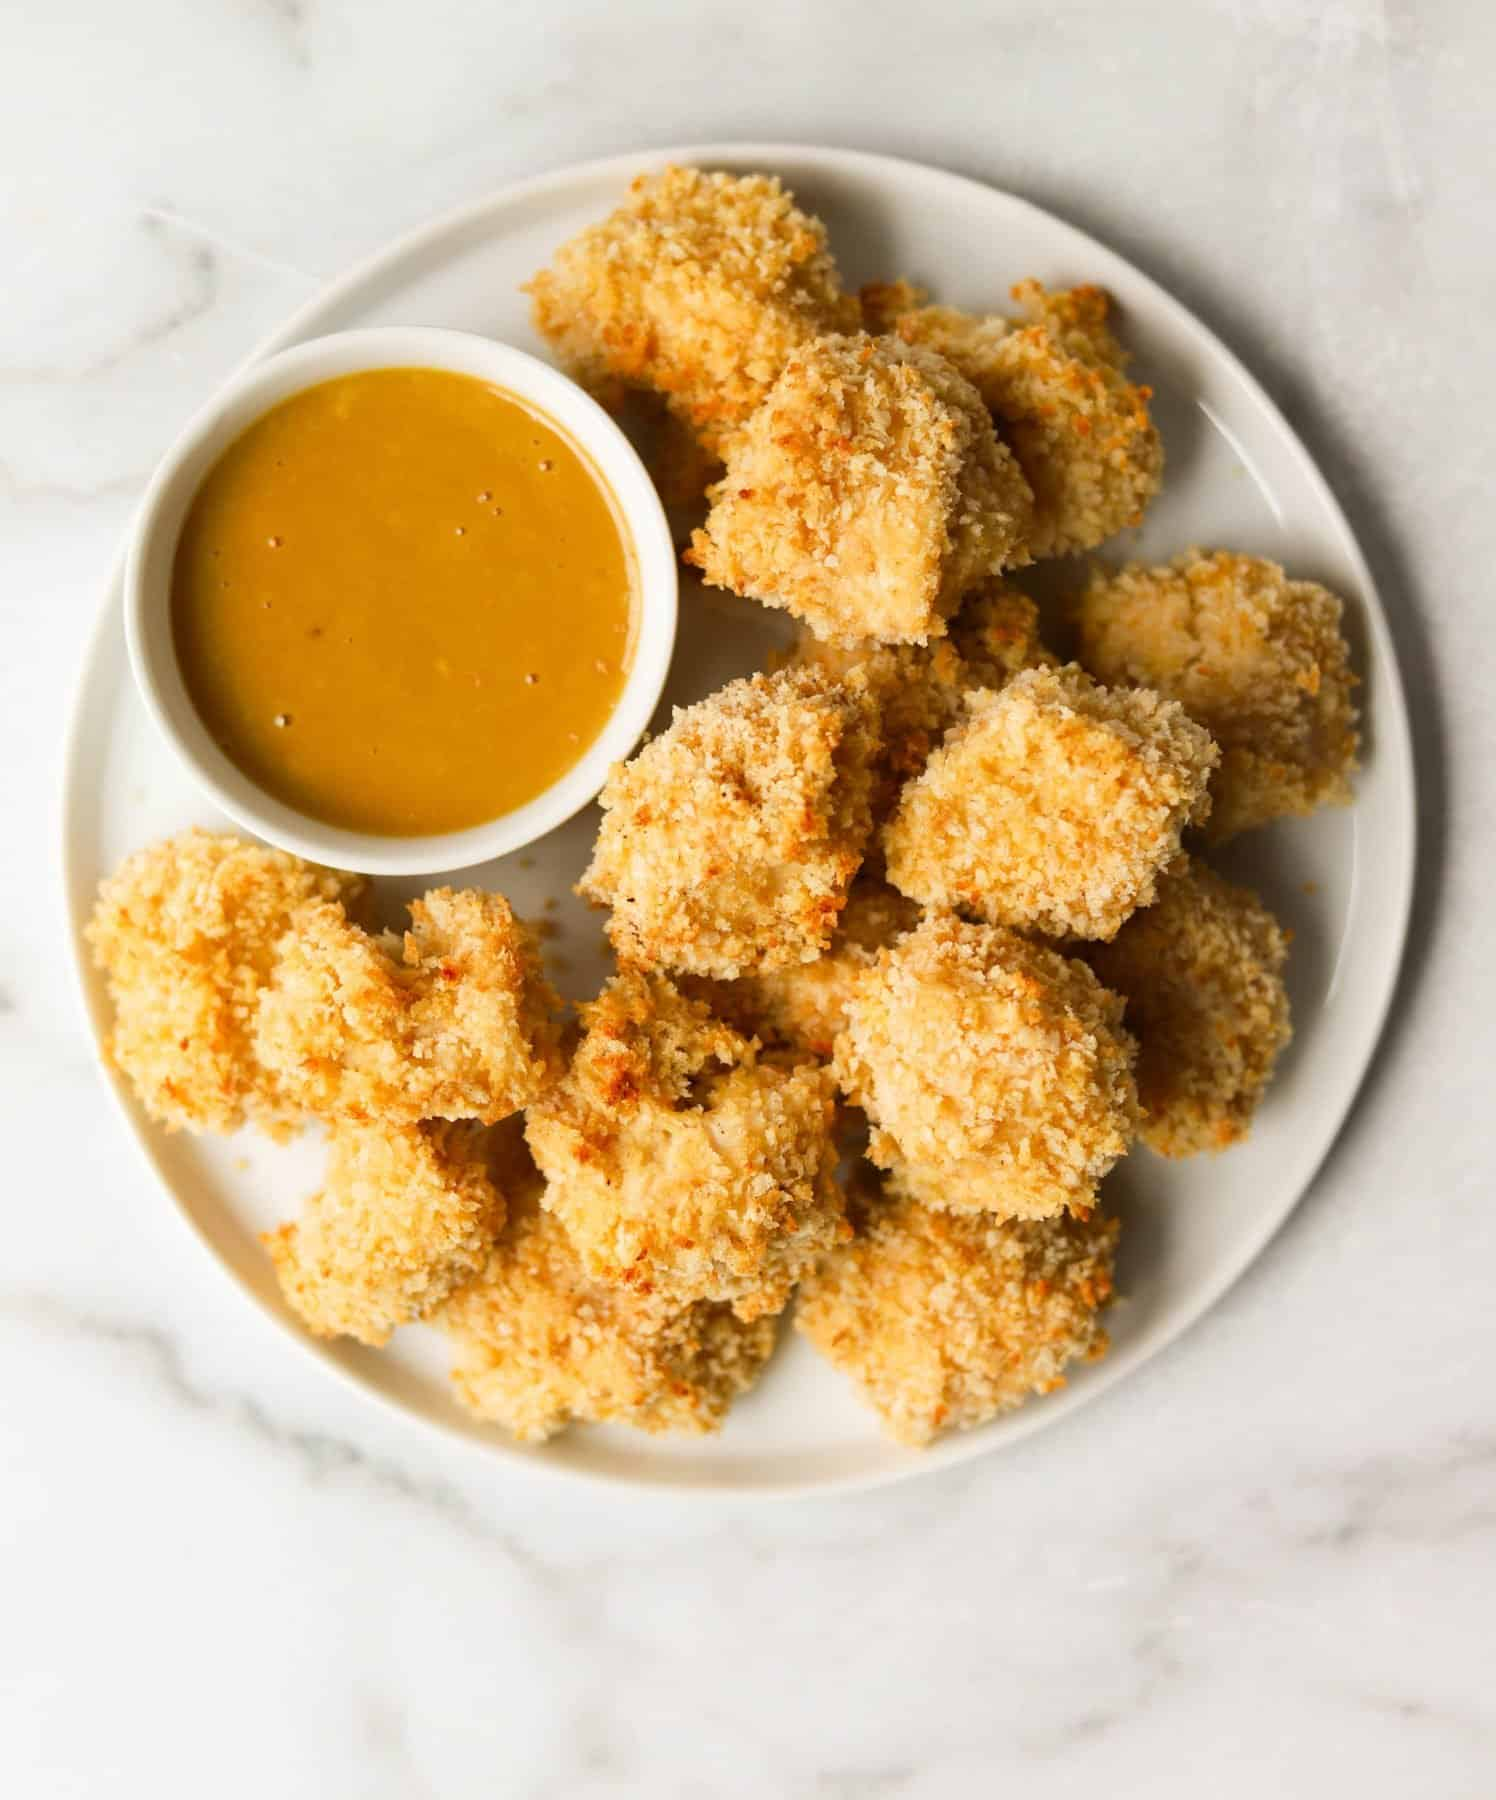 A white plate filled with healthy baked chicken nuggets with a bowl of honey mustard dipping sauce.